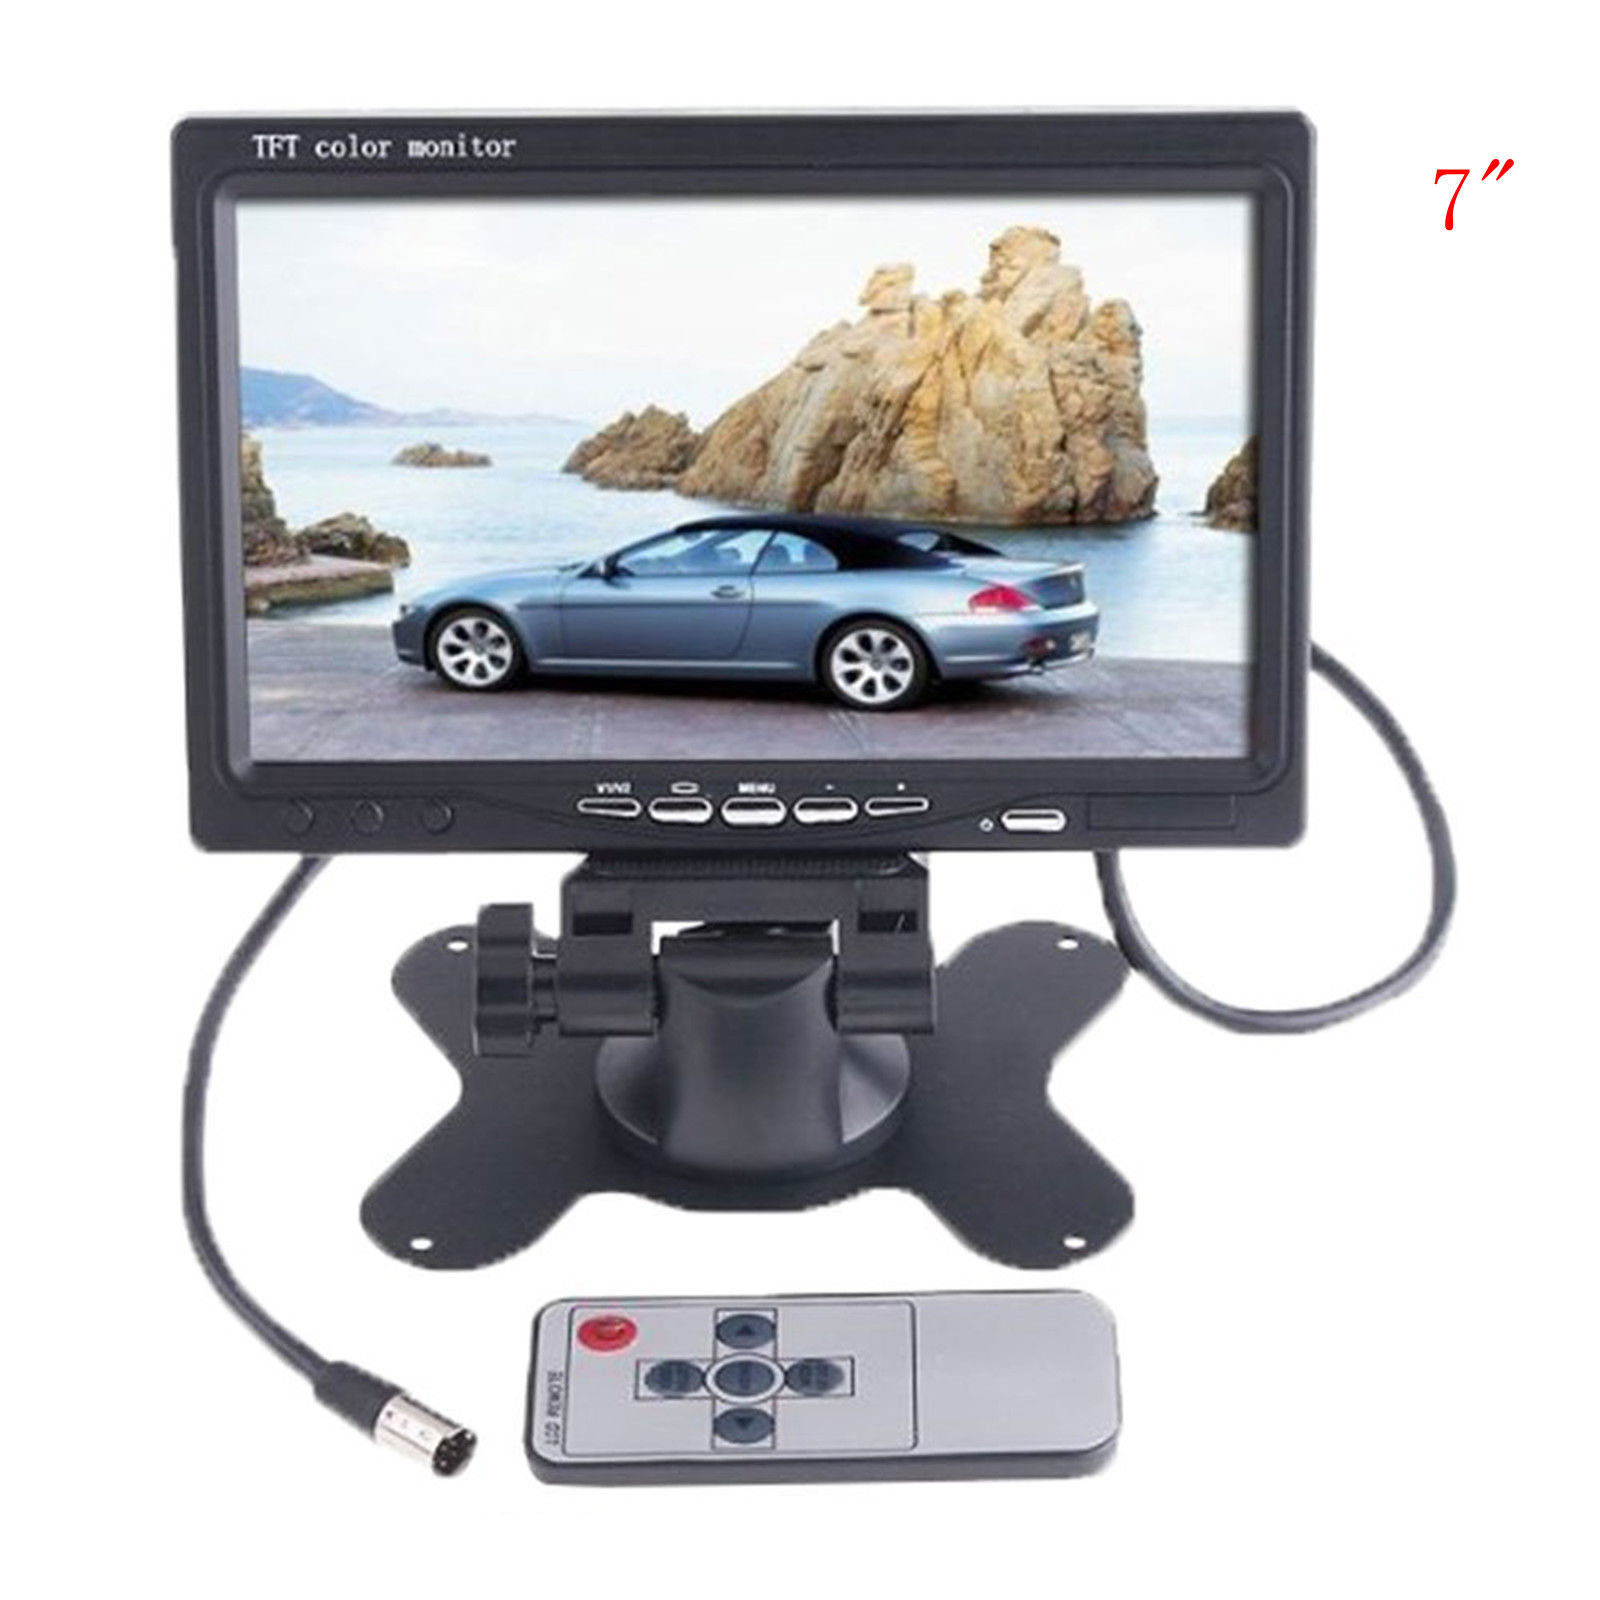 7 TFT LCD Color HD Screen Display Monitor For Car SUV Reversing Parking Camera FPV<br>